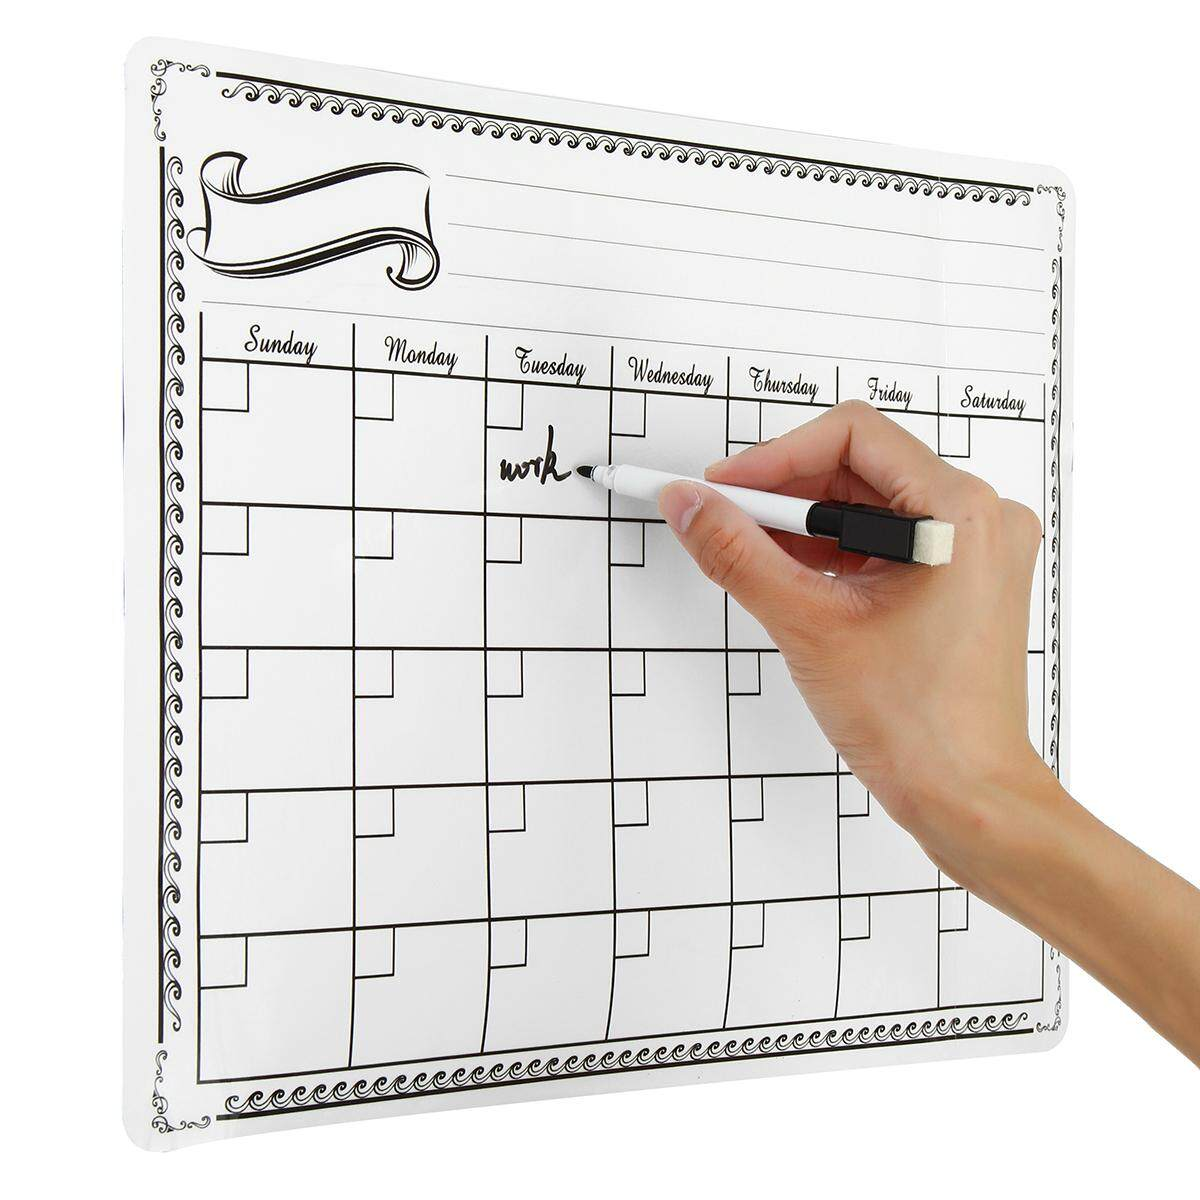 Magnetic Dry Erase Calendar Board Wall Monthly Time Planner Whiteboard By Audew.